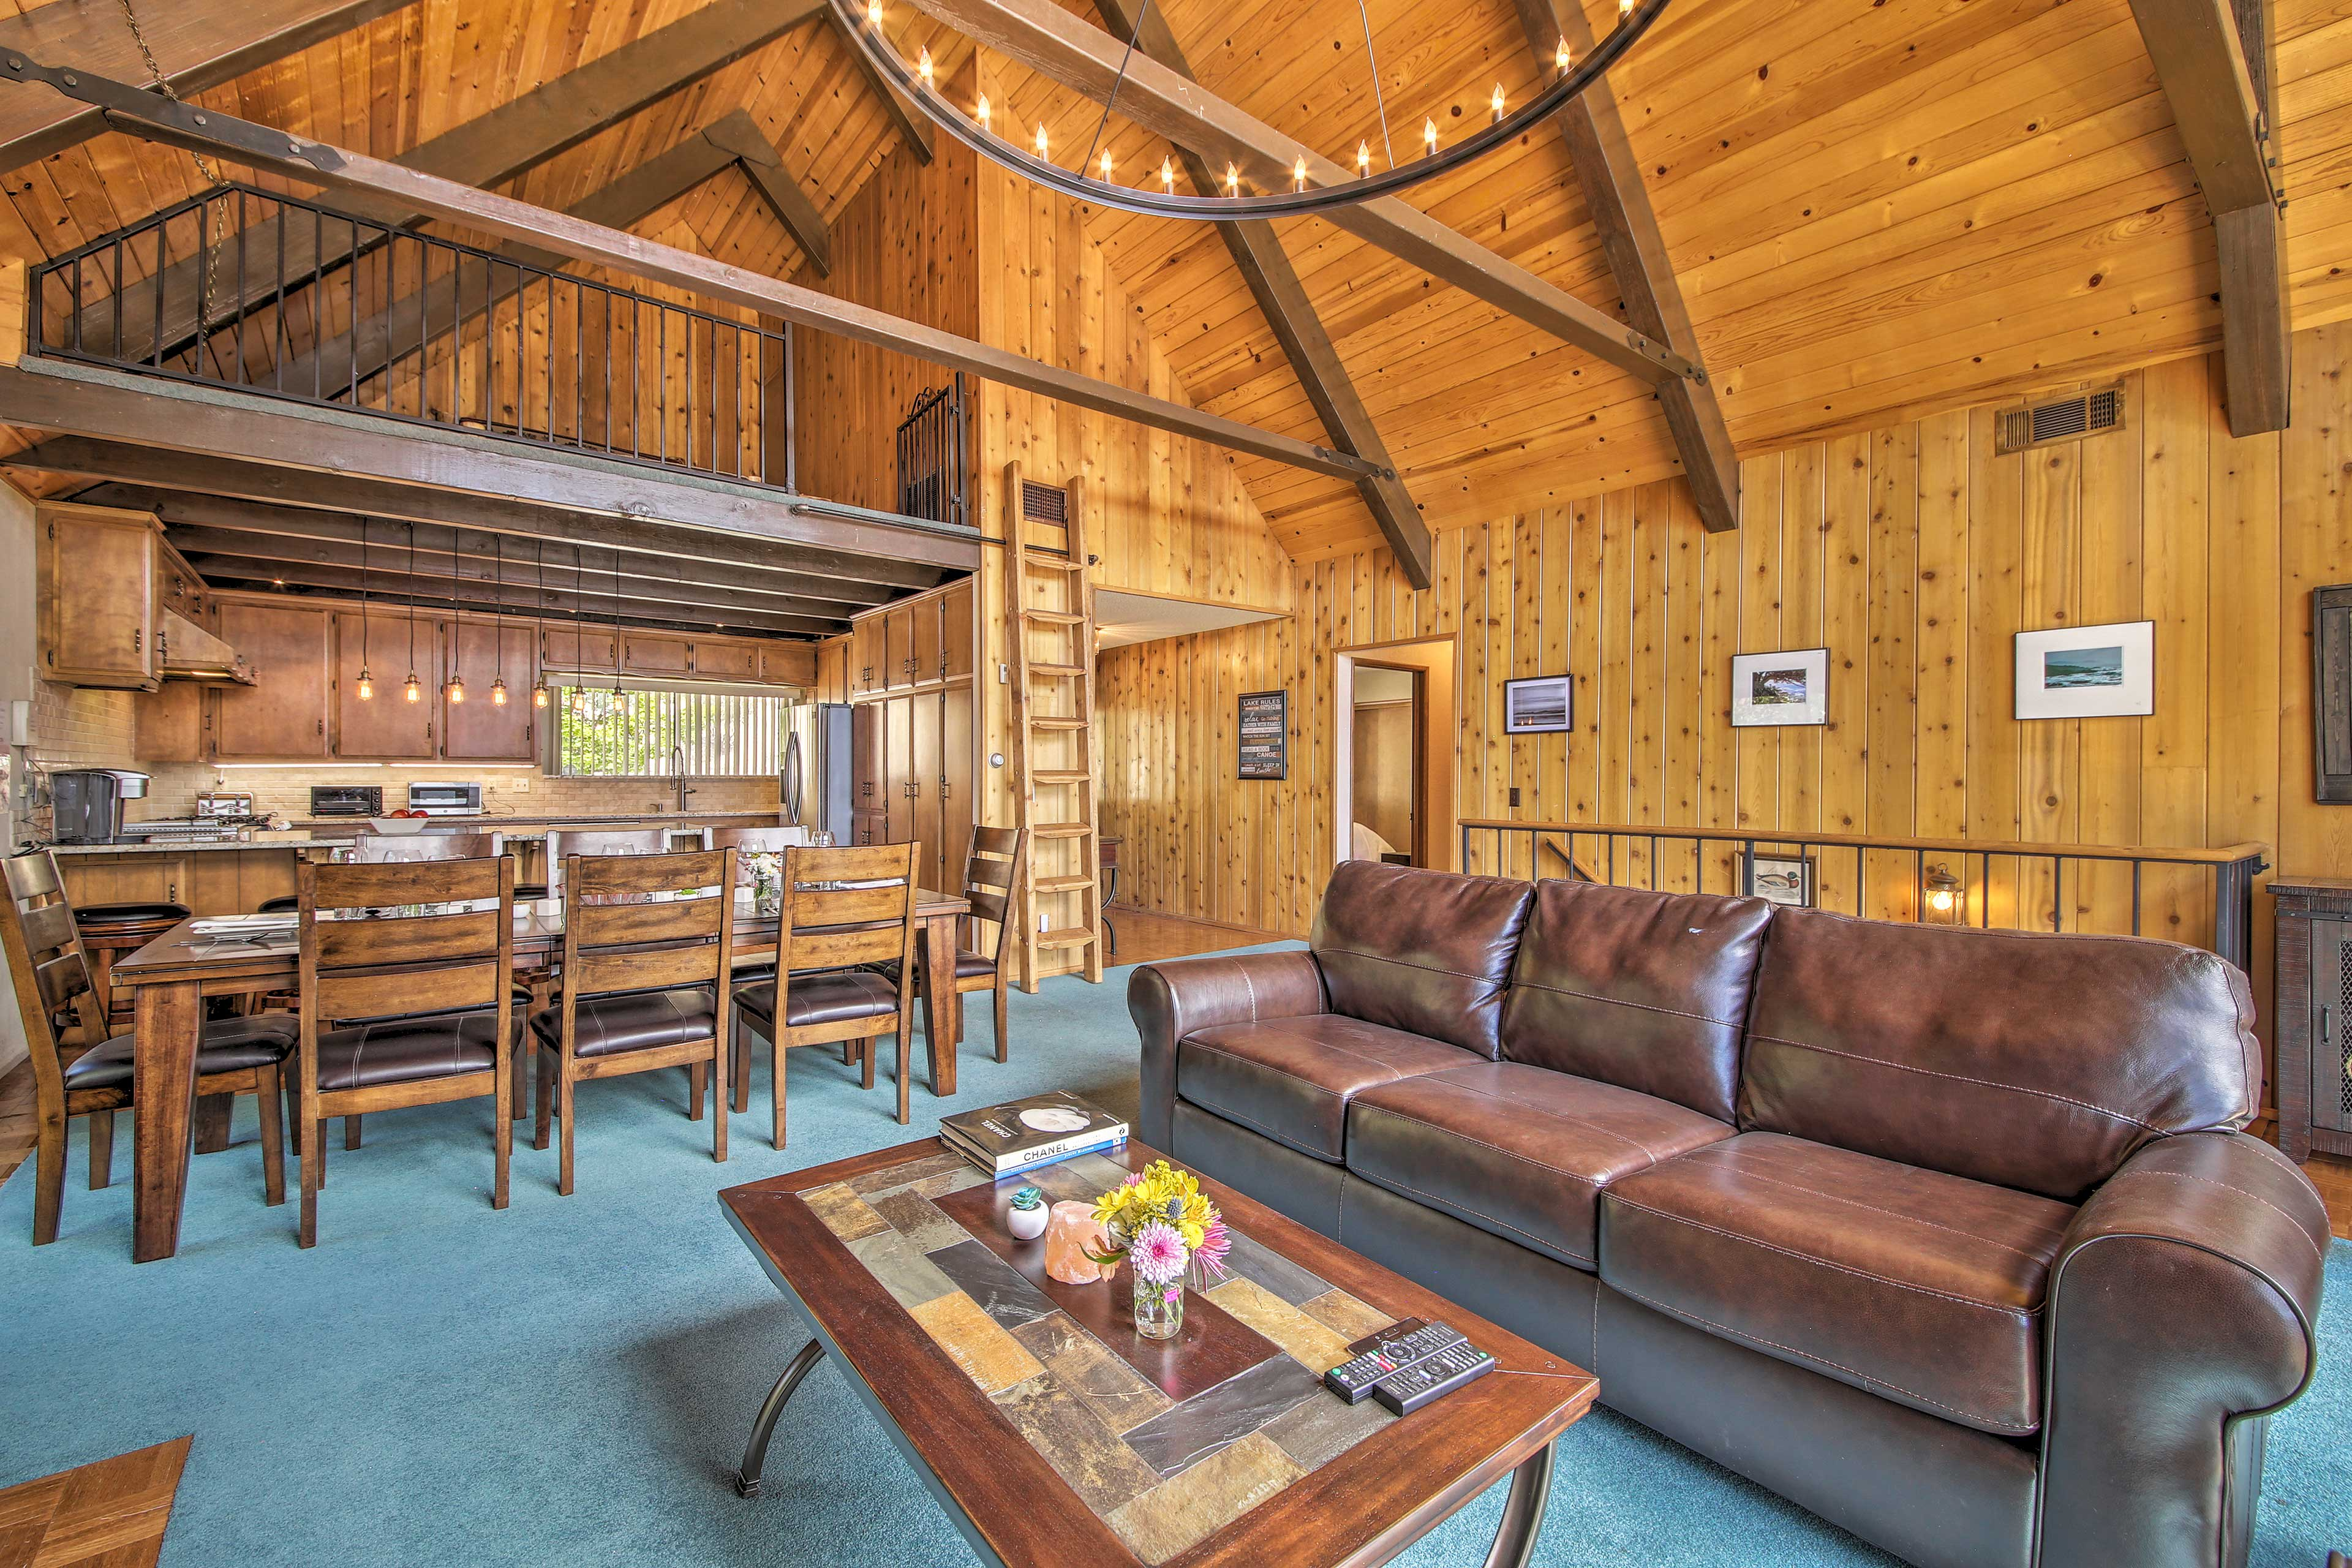 Find open spaces offering room for everyone in this home.